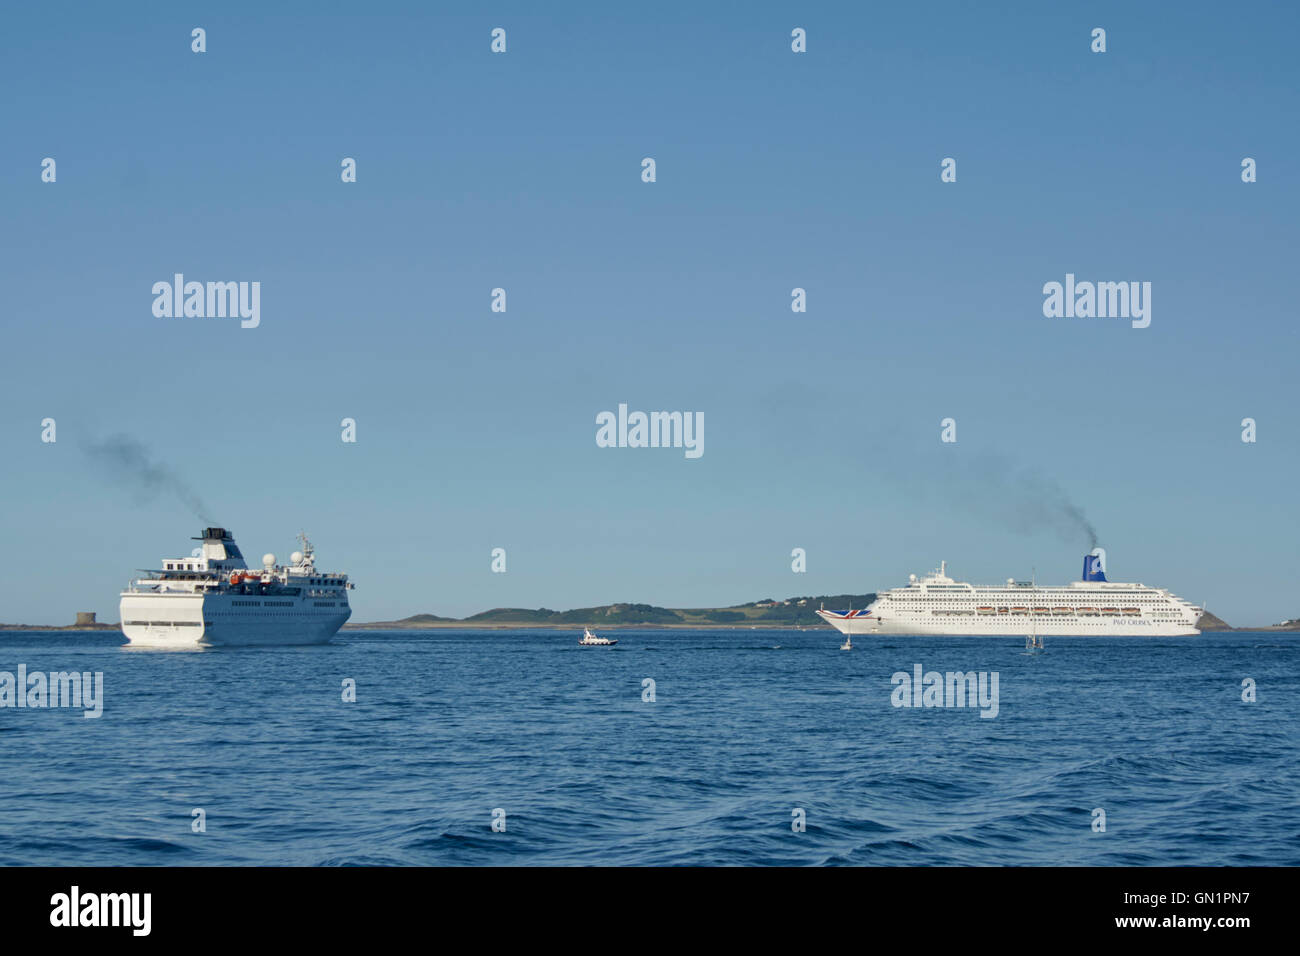 Cruise liners at anchor off St Peter Port Harbour, MV Ventura and P&O Oriana - Stock Image